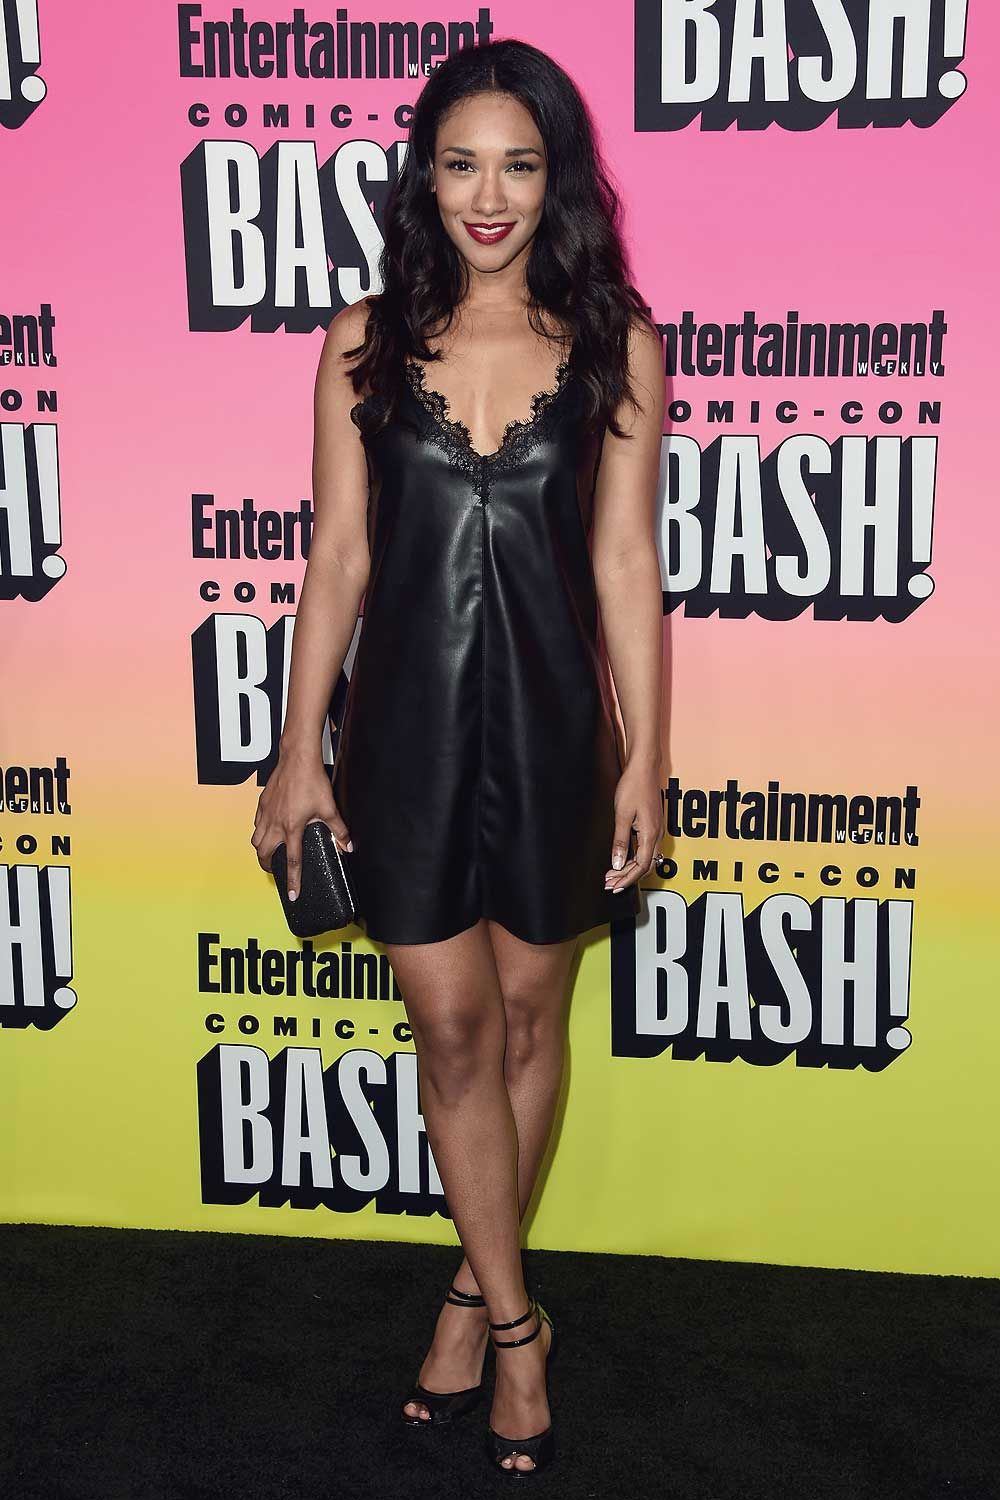 Candice Patton attends Entertainment Weekly Comic-Con Party